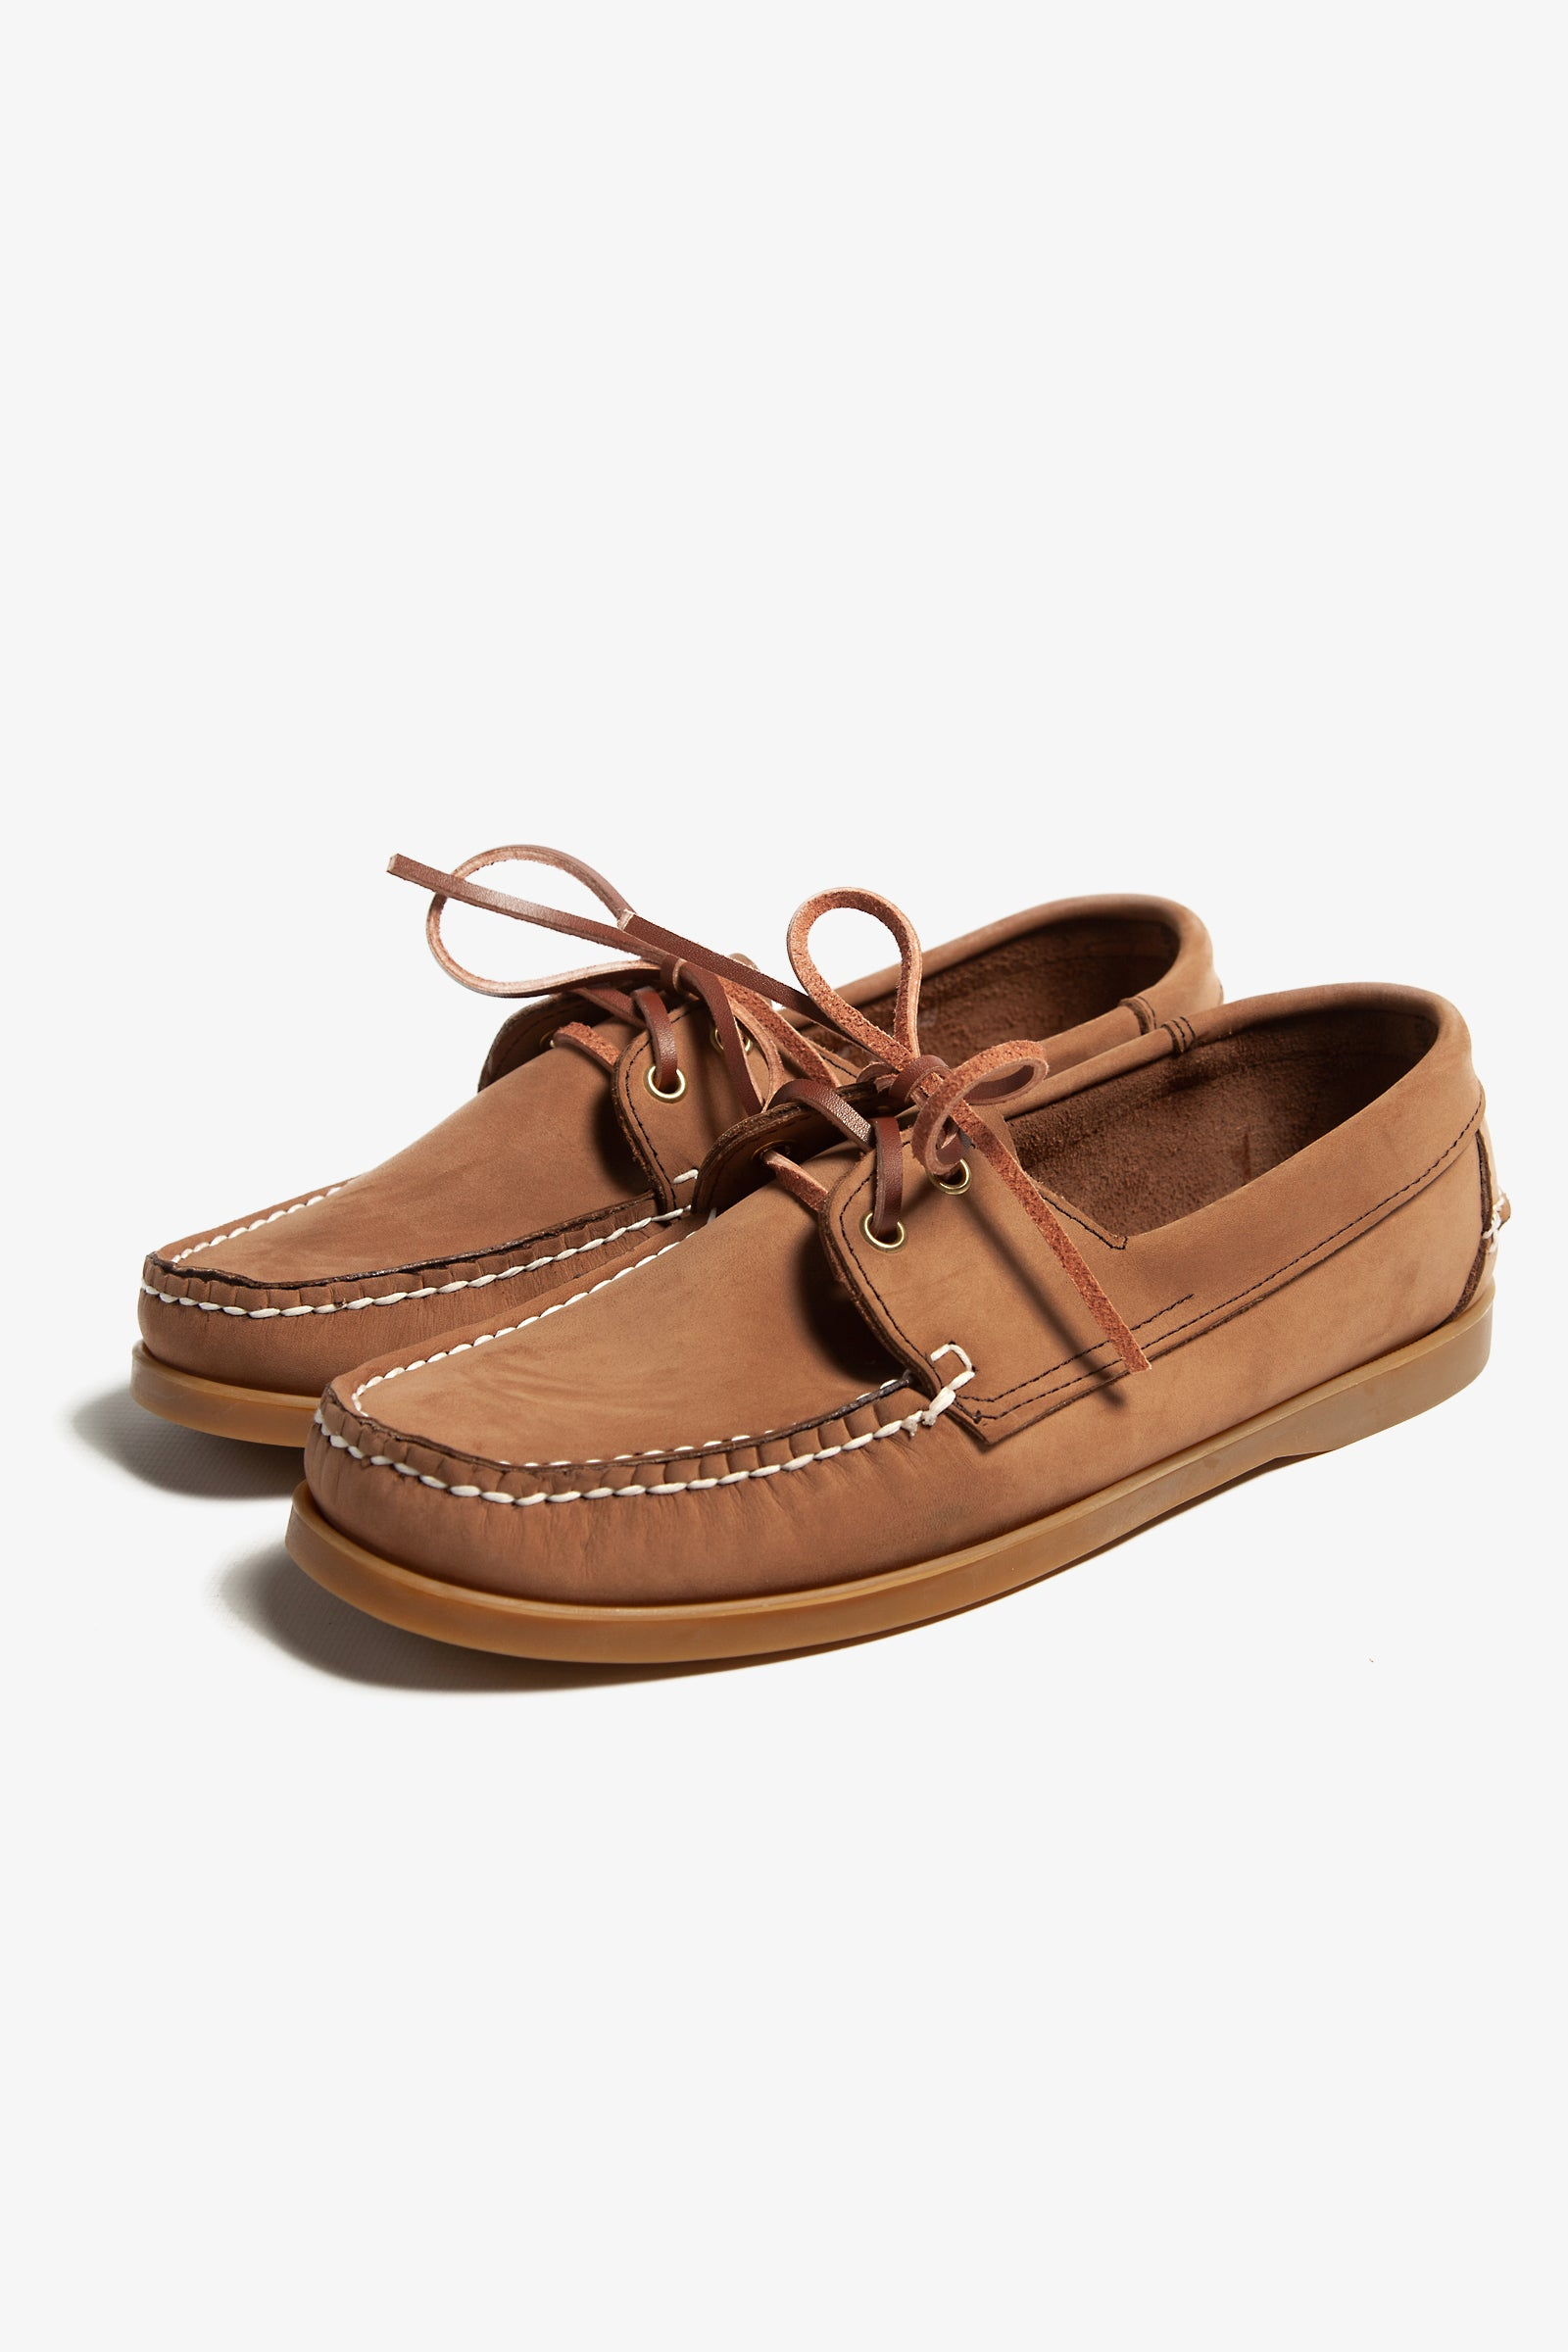 Goodcamp - Deck Loafer Shoes - Hazel